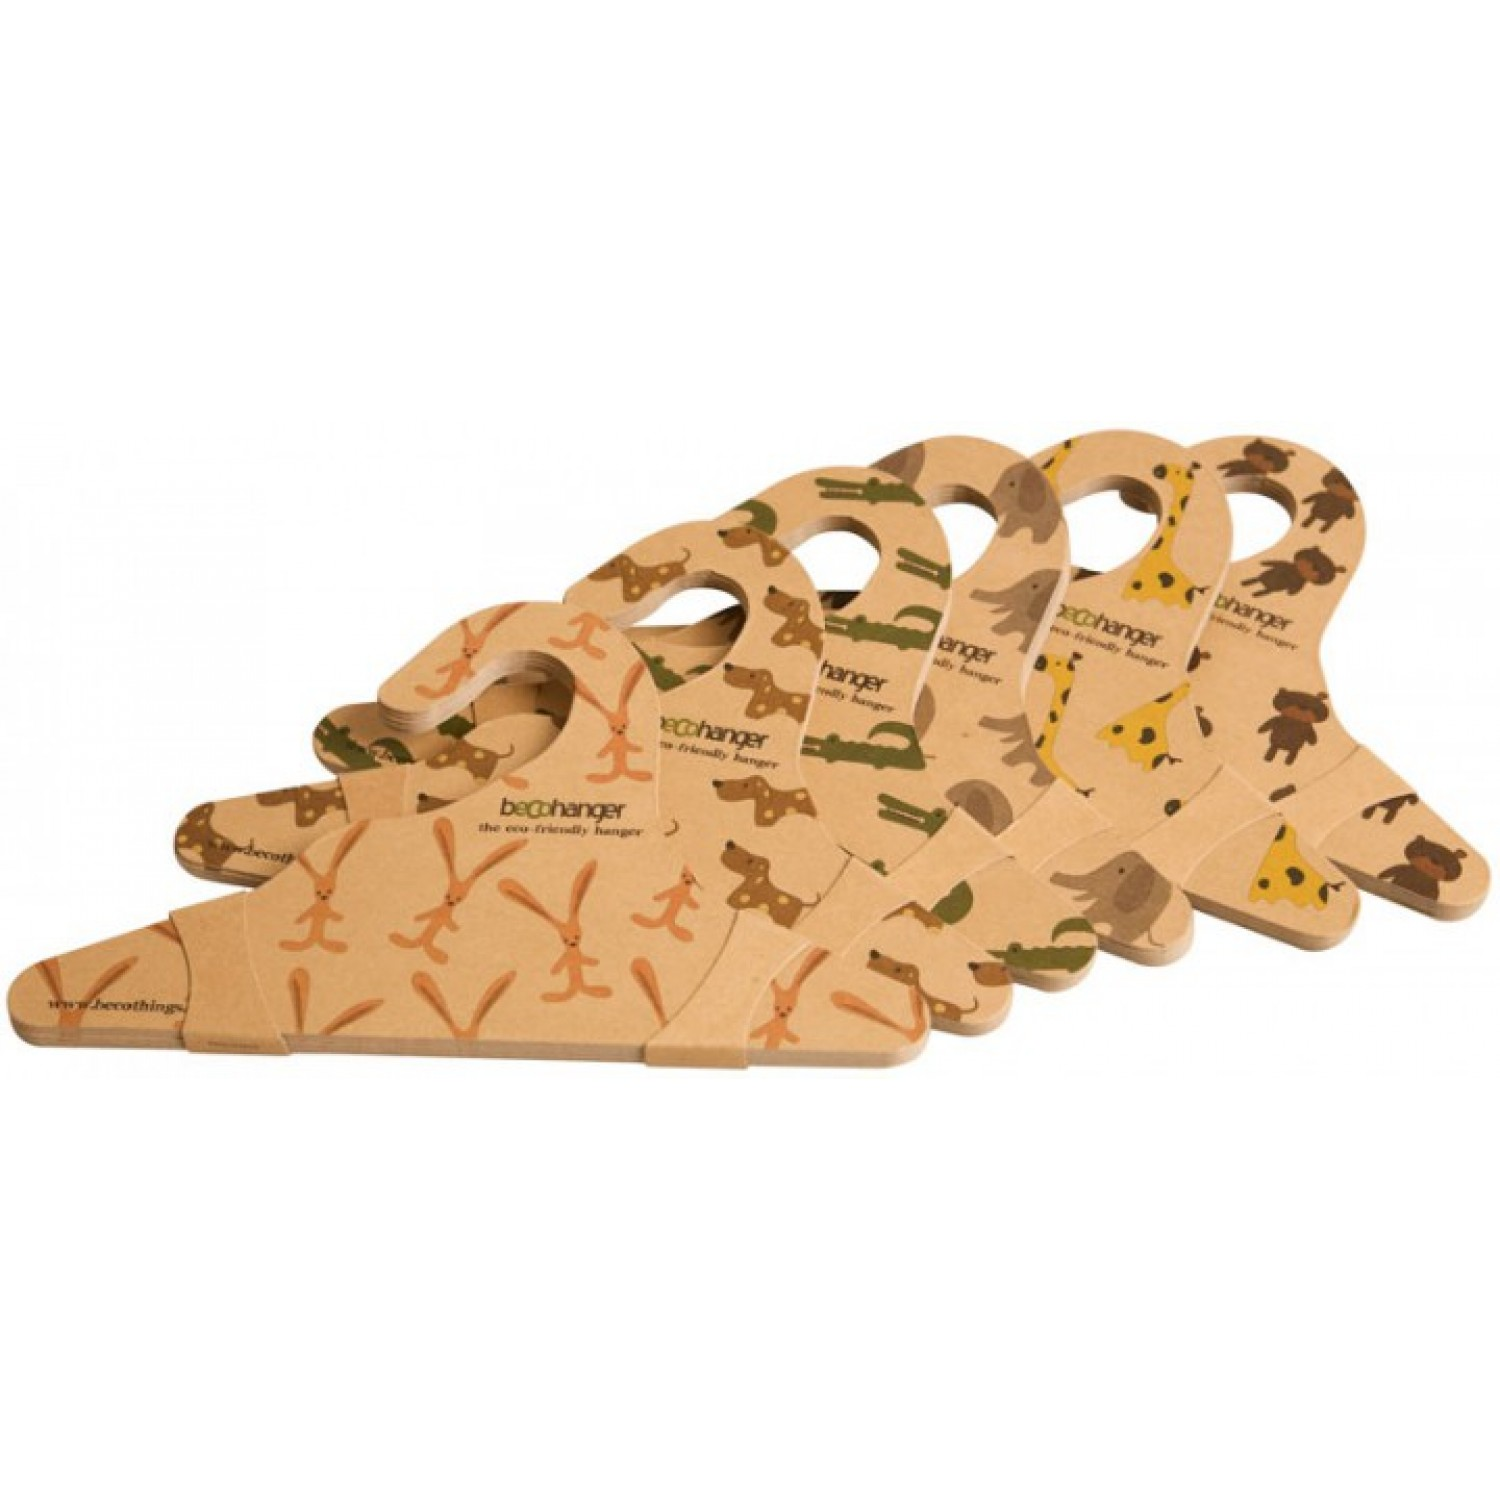 BecoHangers of recycled cardboard